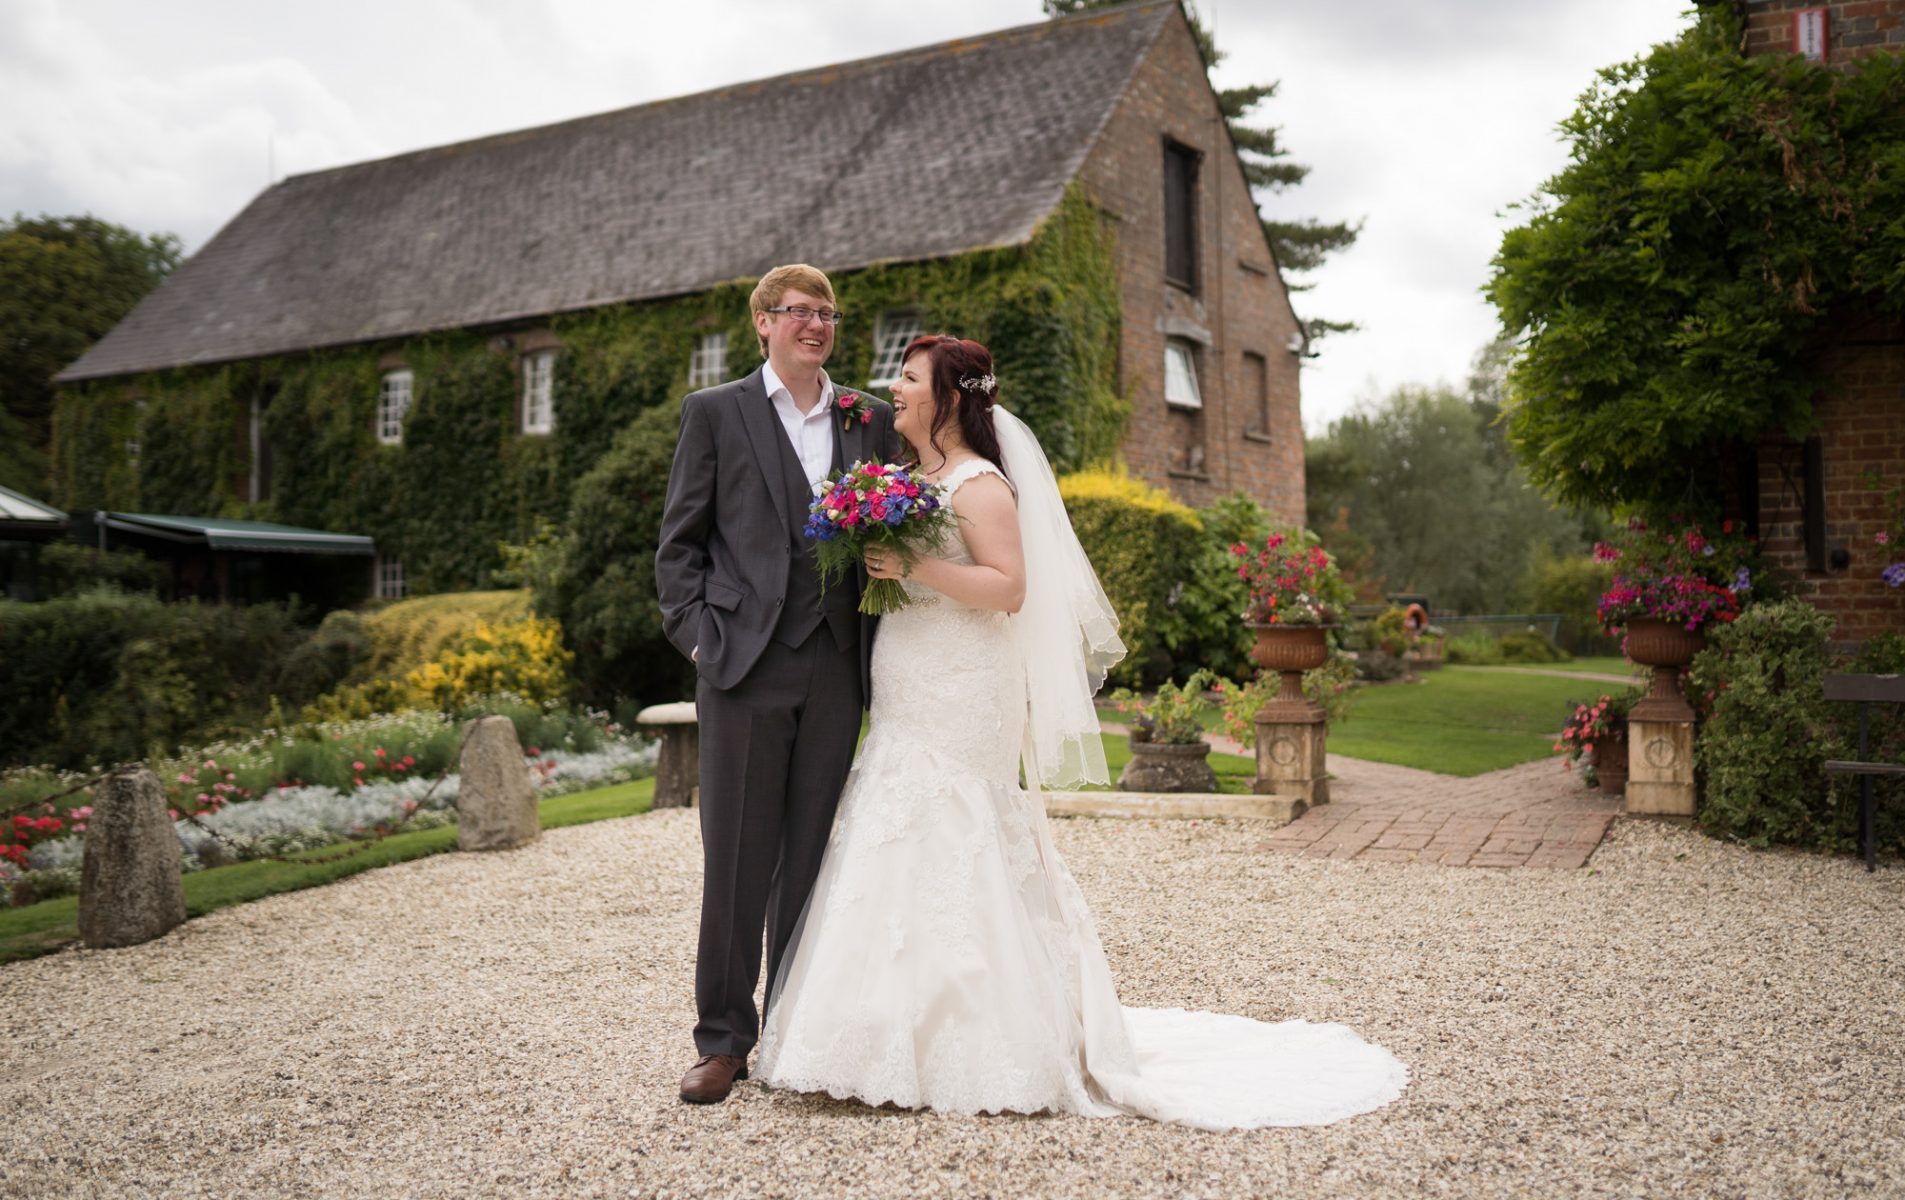 Louise and Ben's Wedding - The Old Mill Aldermaston